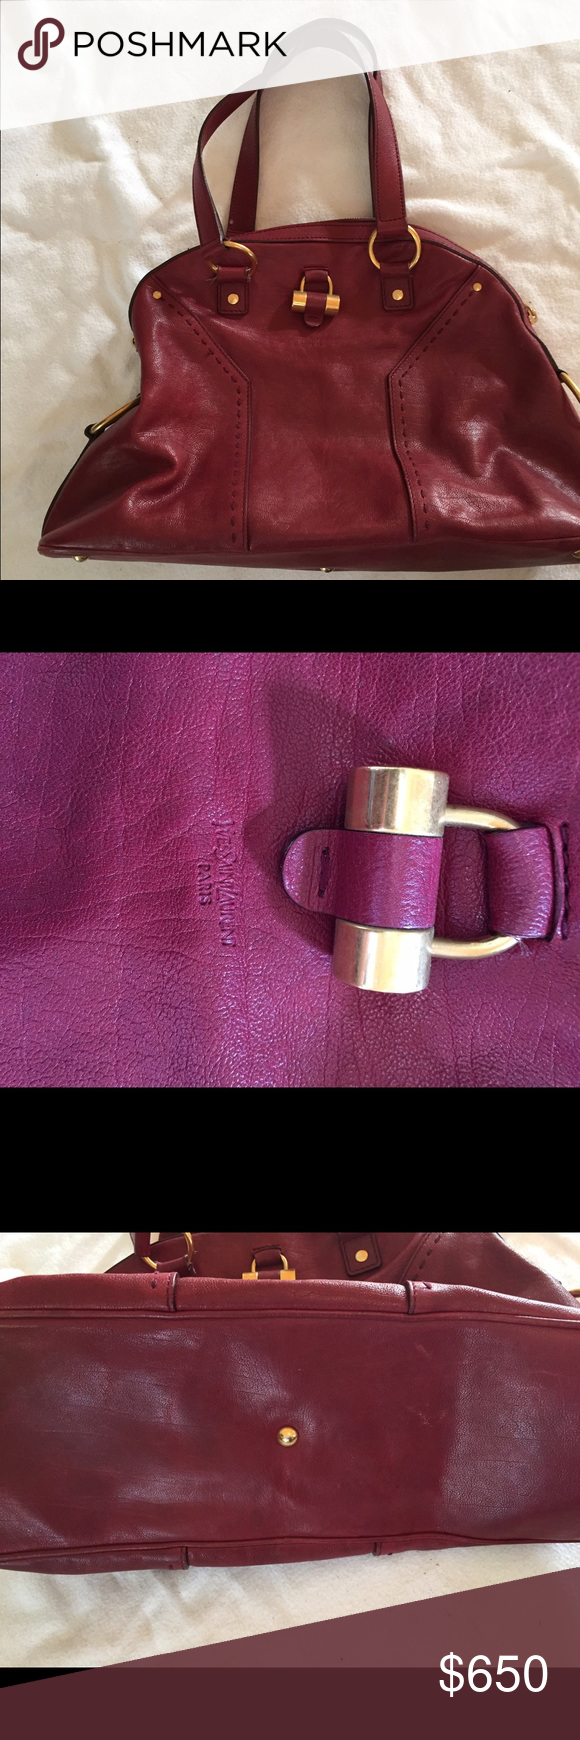 Yves saint laurent ysl muse bag burgundy Excellent condition, black satin on inside looks almost new. I used this for one year, but only occasional use. I can't post more pics here but happily send by email. Authentic! Several years old but looks great! Yves Saint Laurent Bags Satchels